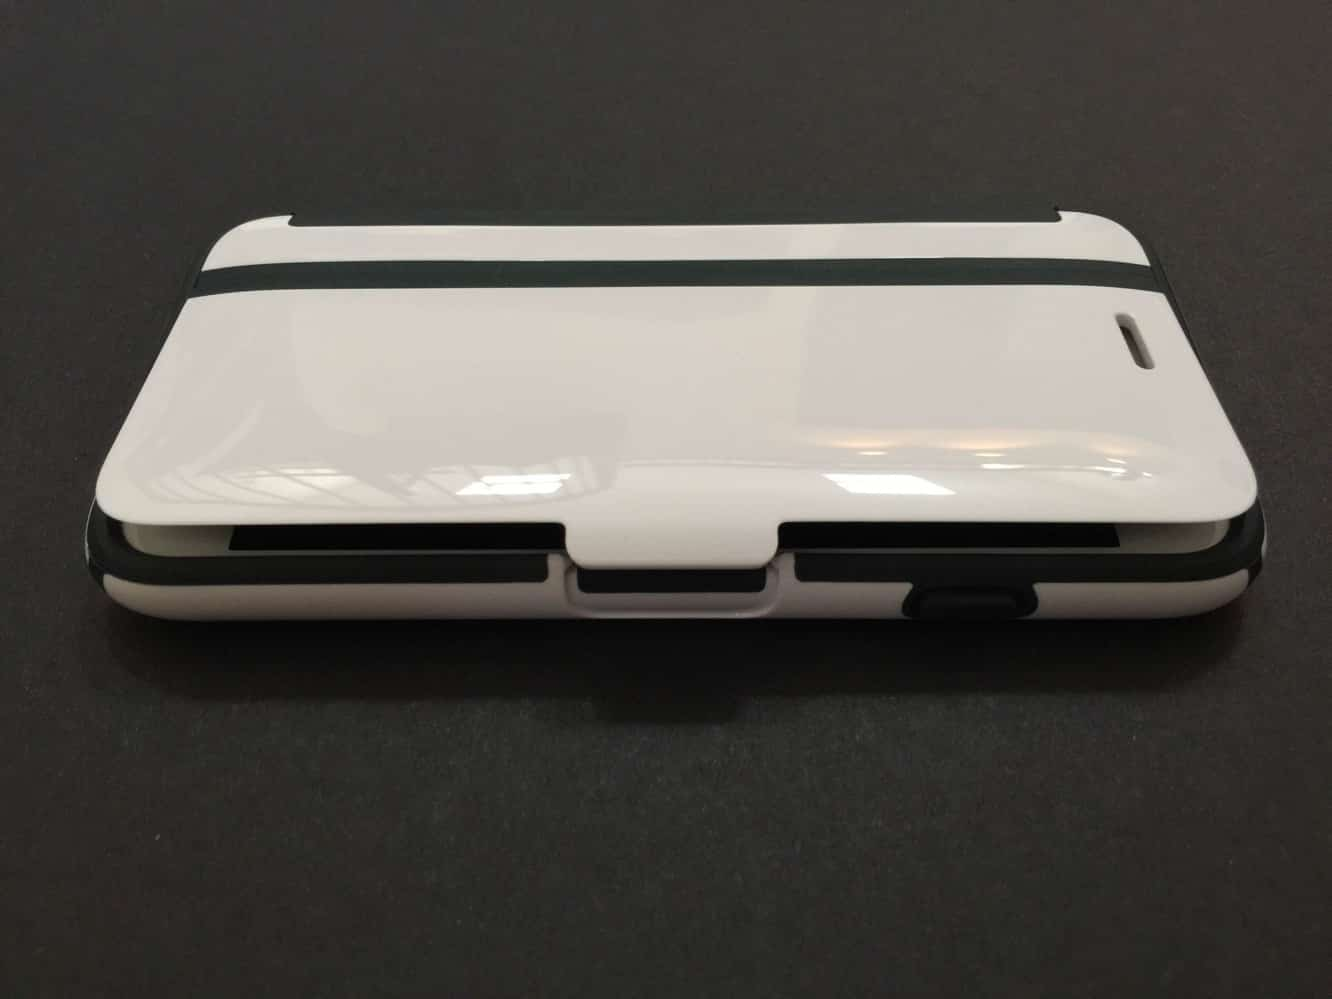 Review: Speck CandyShell Wrap for iPhone 6 and iPhone 6 Plus